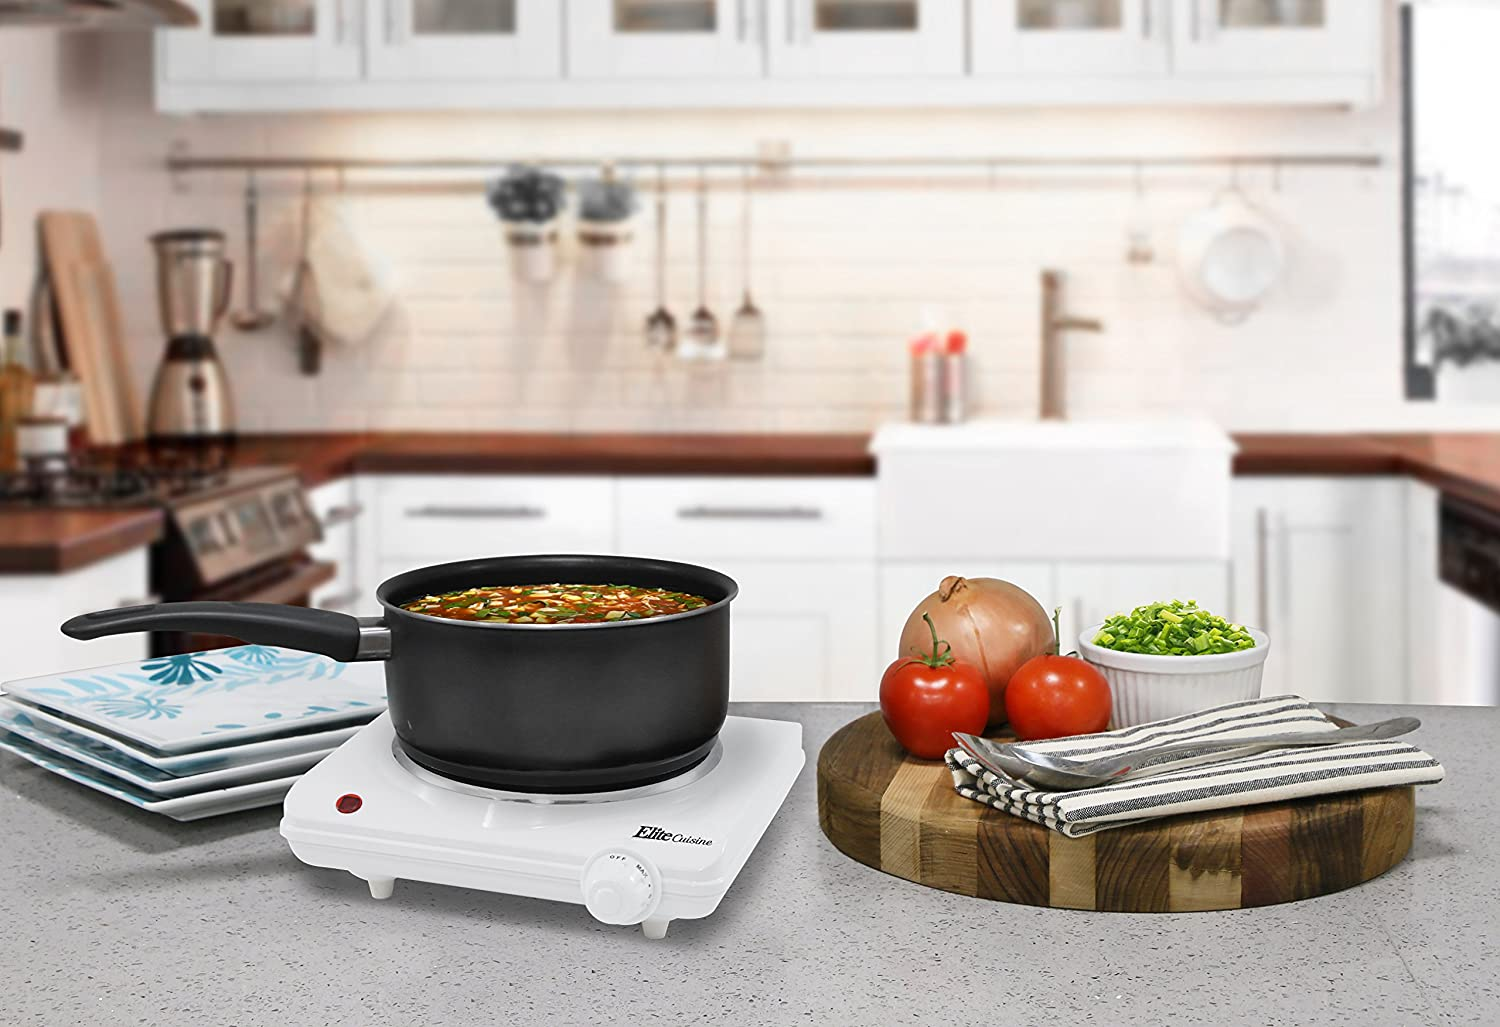 Maxi-Matic Elite Cuisine Countertop Electric Hot Burner, Temperature Controls, Power Indicator Lights, Easy to Clean, Single, White: Electric Countertop Burners: Kitchen & Dining